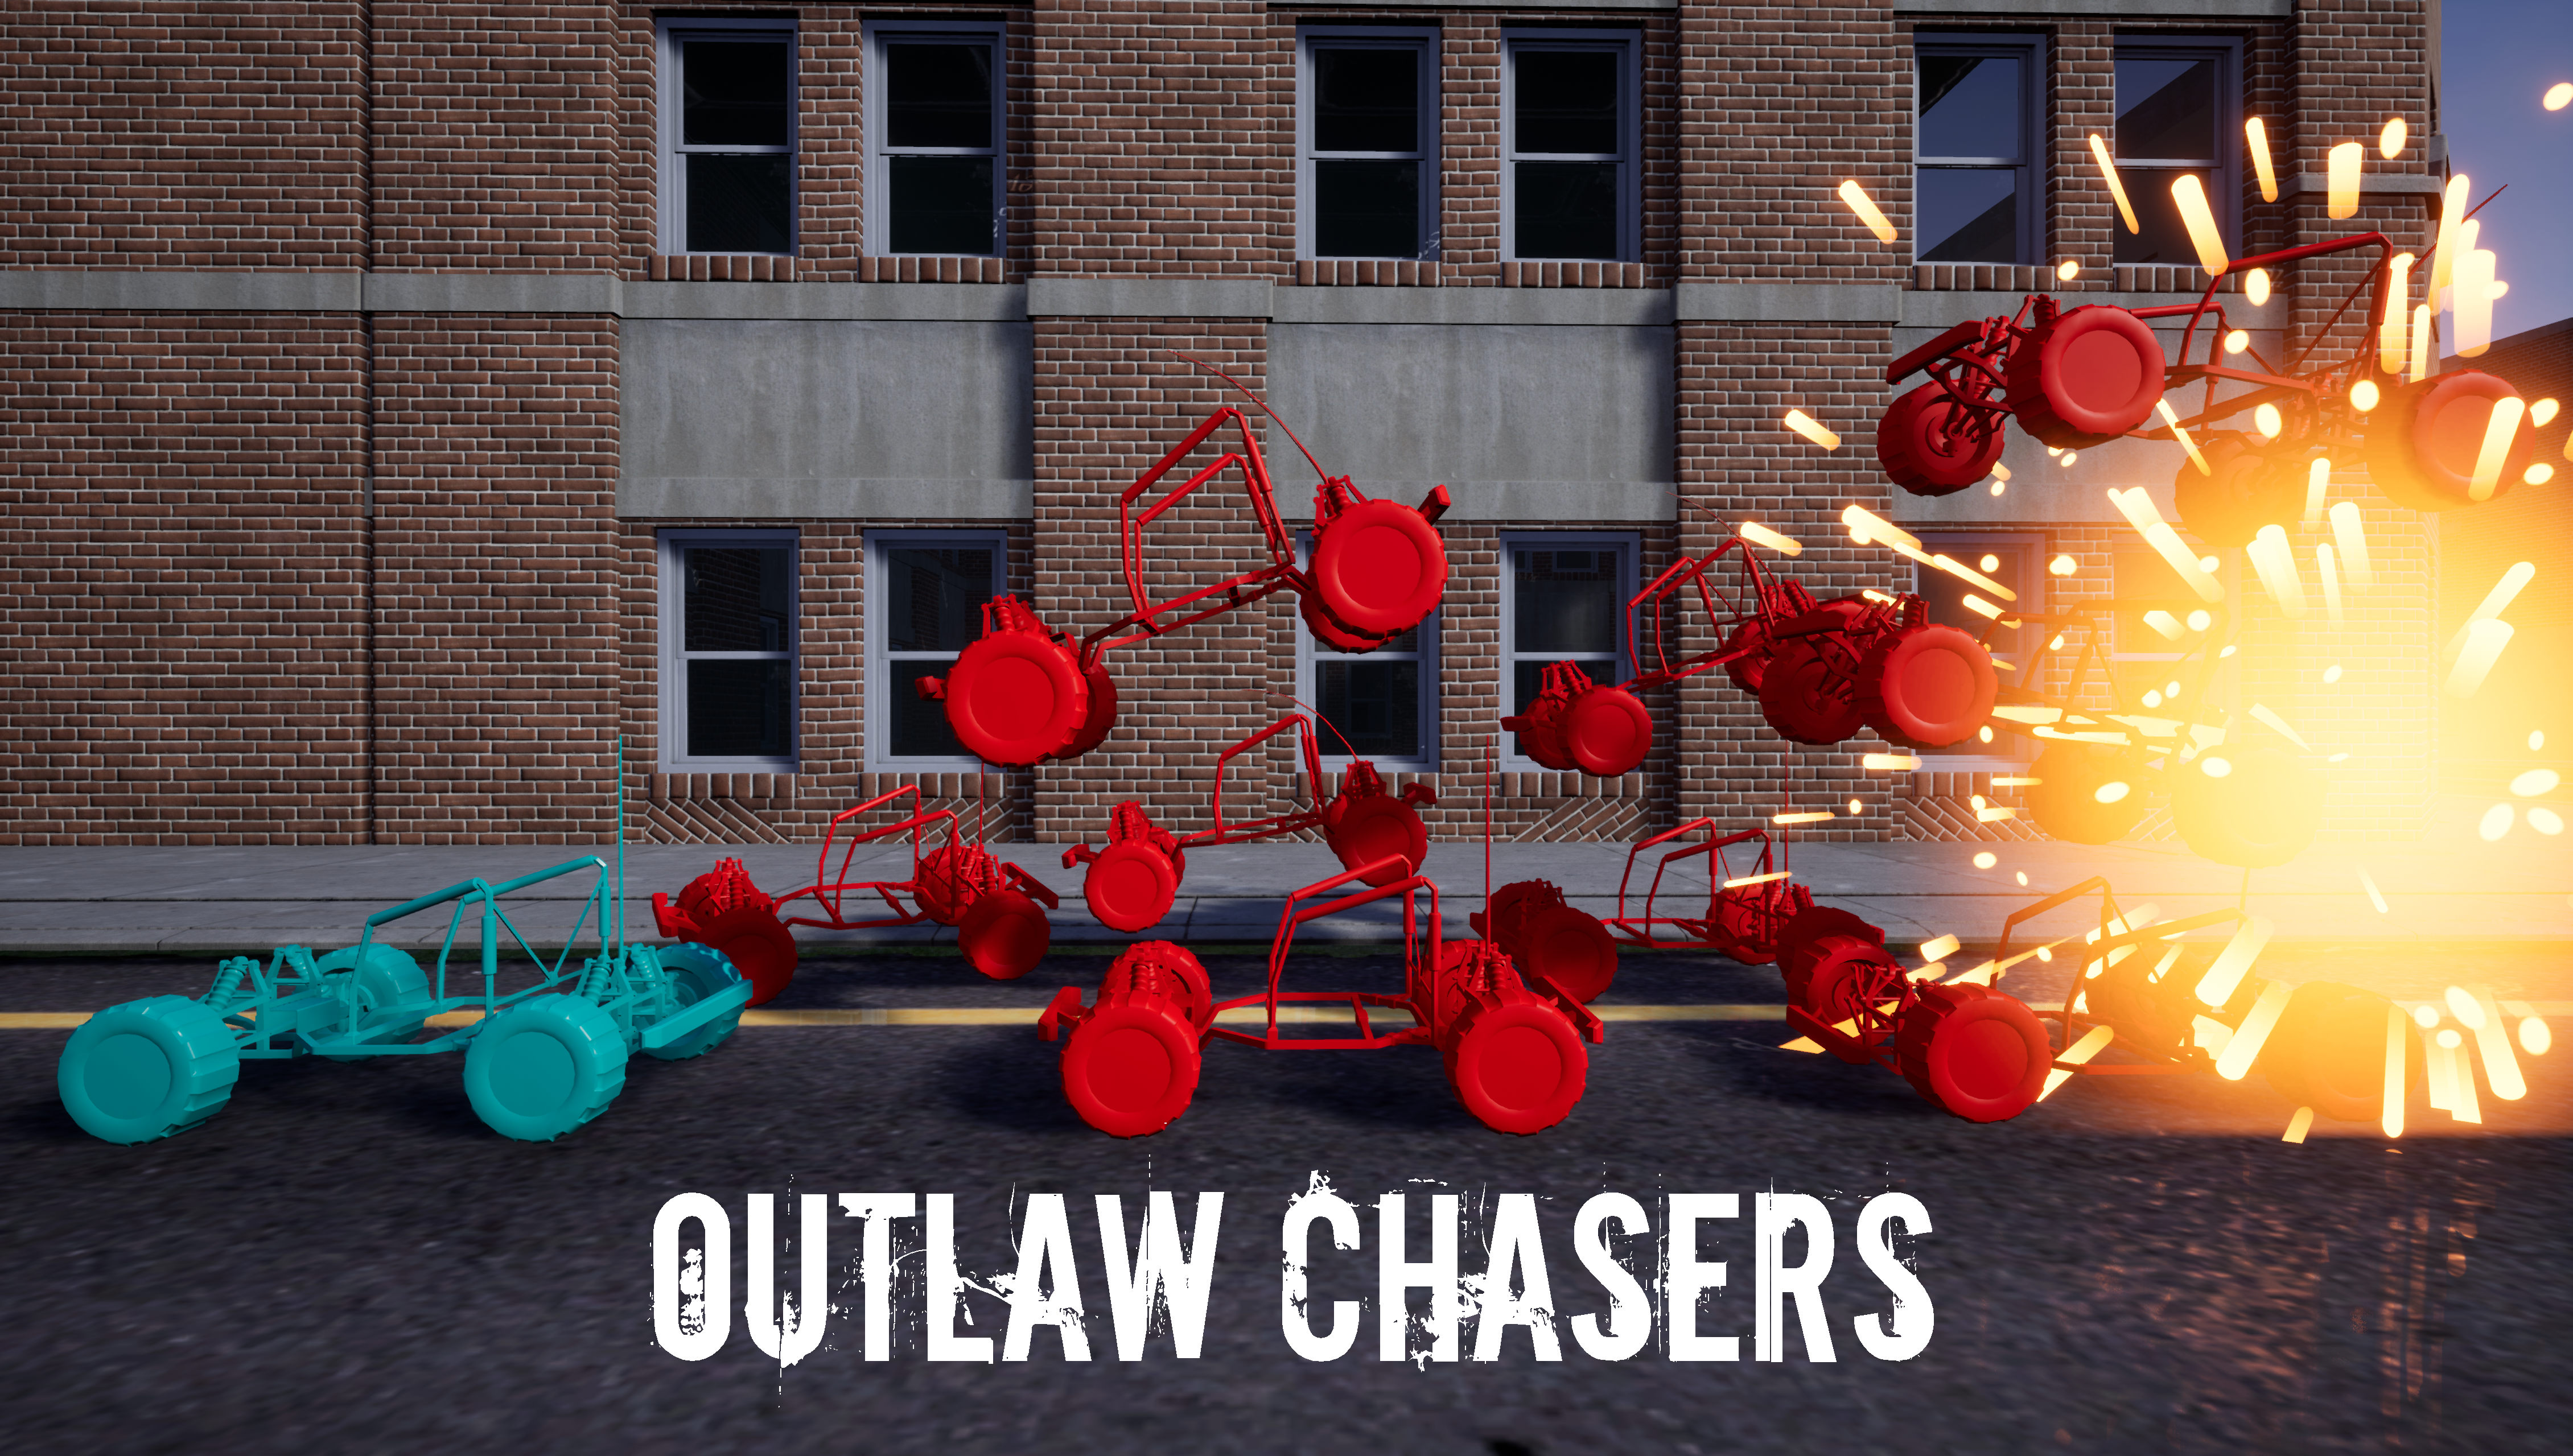 Outlaw Chasers - How long can you last?